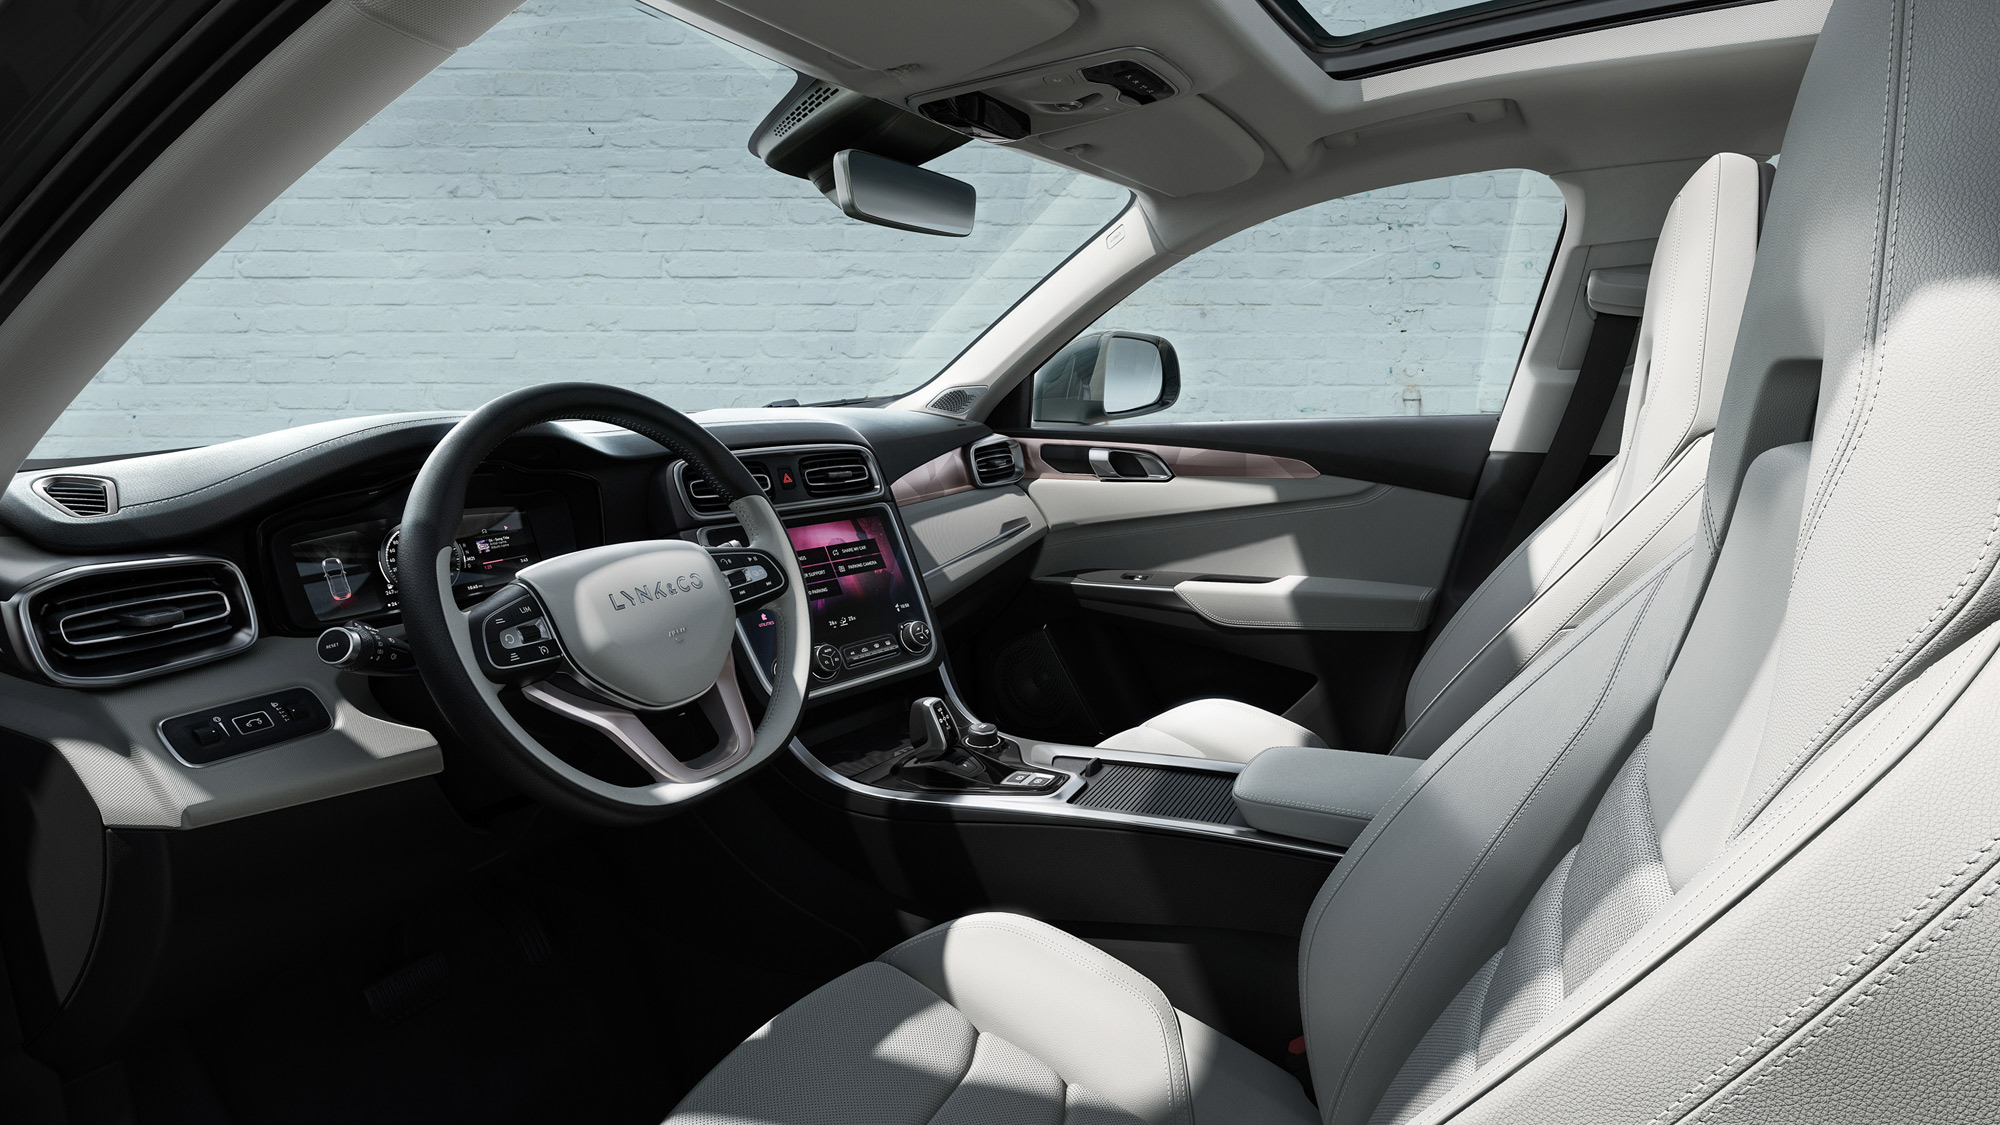 Lynk & Co 01 connected SUV interior